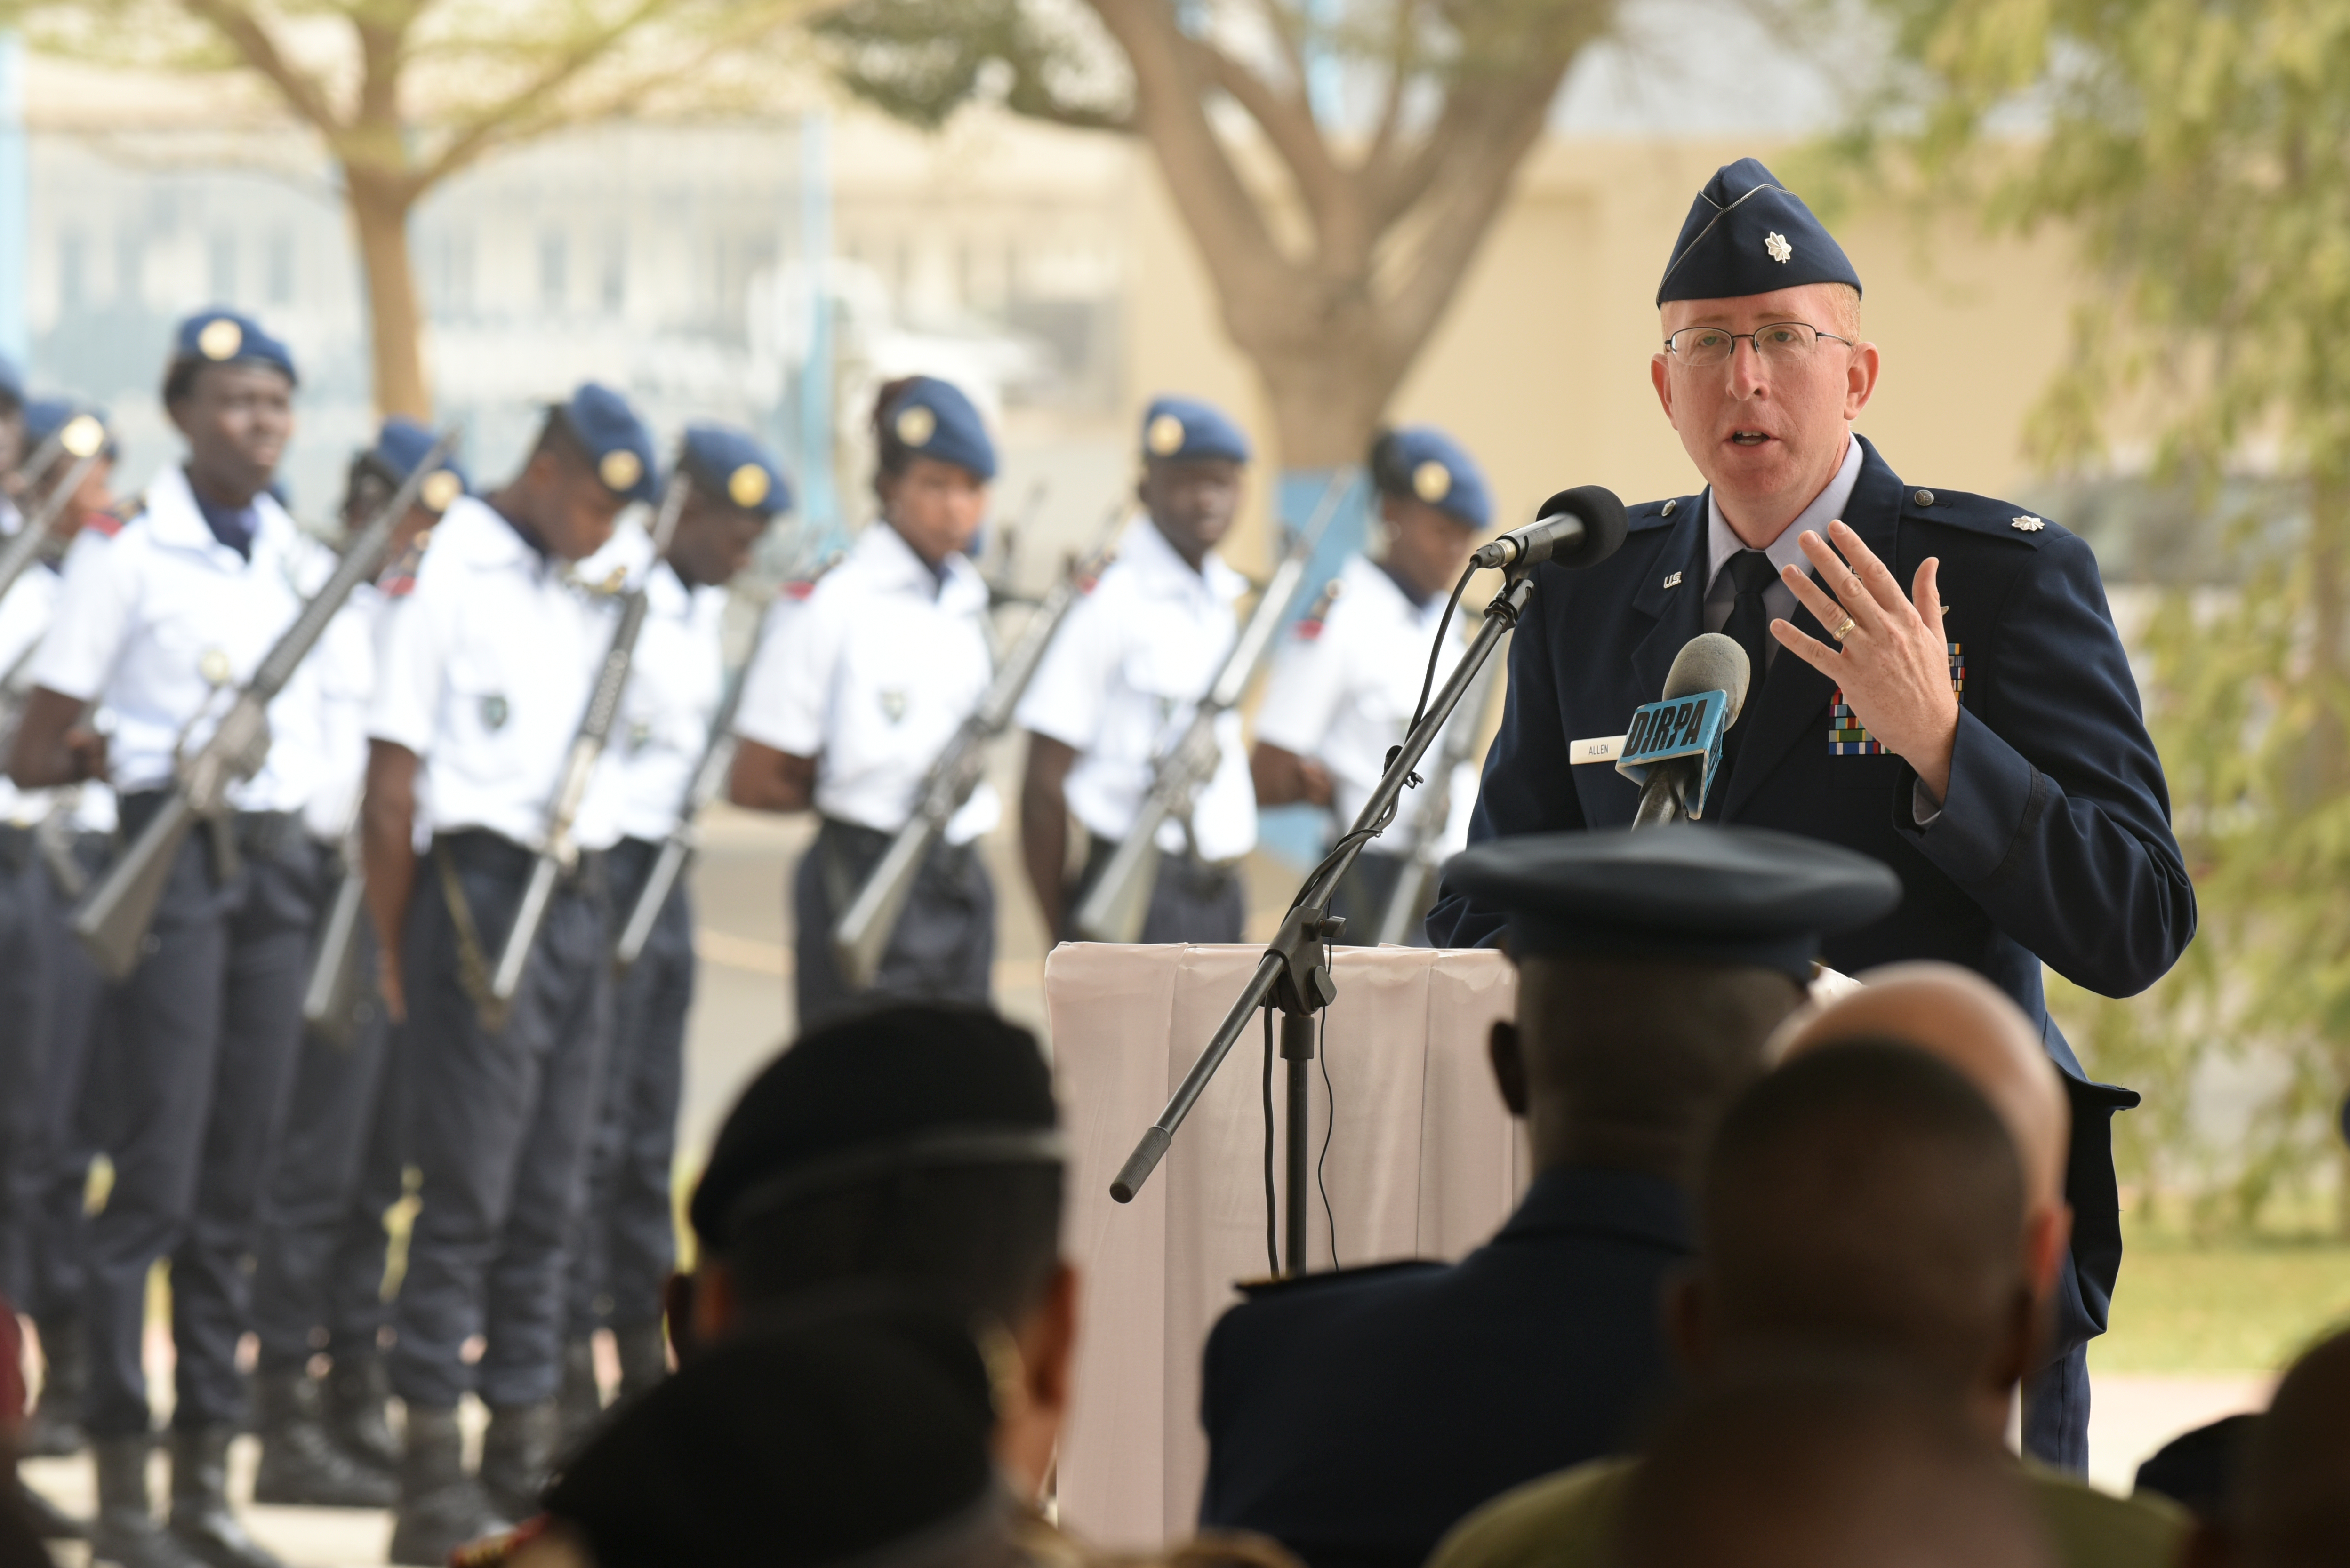 U.S. Air Force Lt. Col. Andrew Allen, chief of global health engagements branch, U.S. Air Forces in Europe and Air Forces Africa, speaks during the closing ceremony of African Partnership Flight Senegal at Captain Andalla Cissé Air Base, Senegal, March 23, 2018. The purpose of APF Senegal is to conduct multilateral, military-to-military engagements and security assistance with African air forces. (U.S. Air Force photo by Airman 1st Class Eli Chevalier)